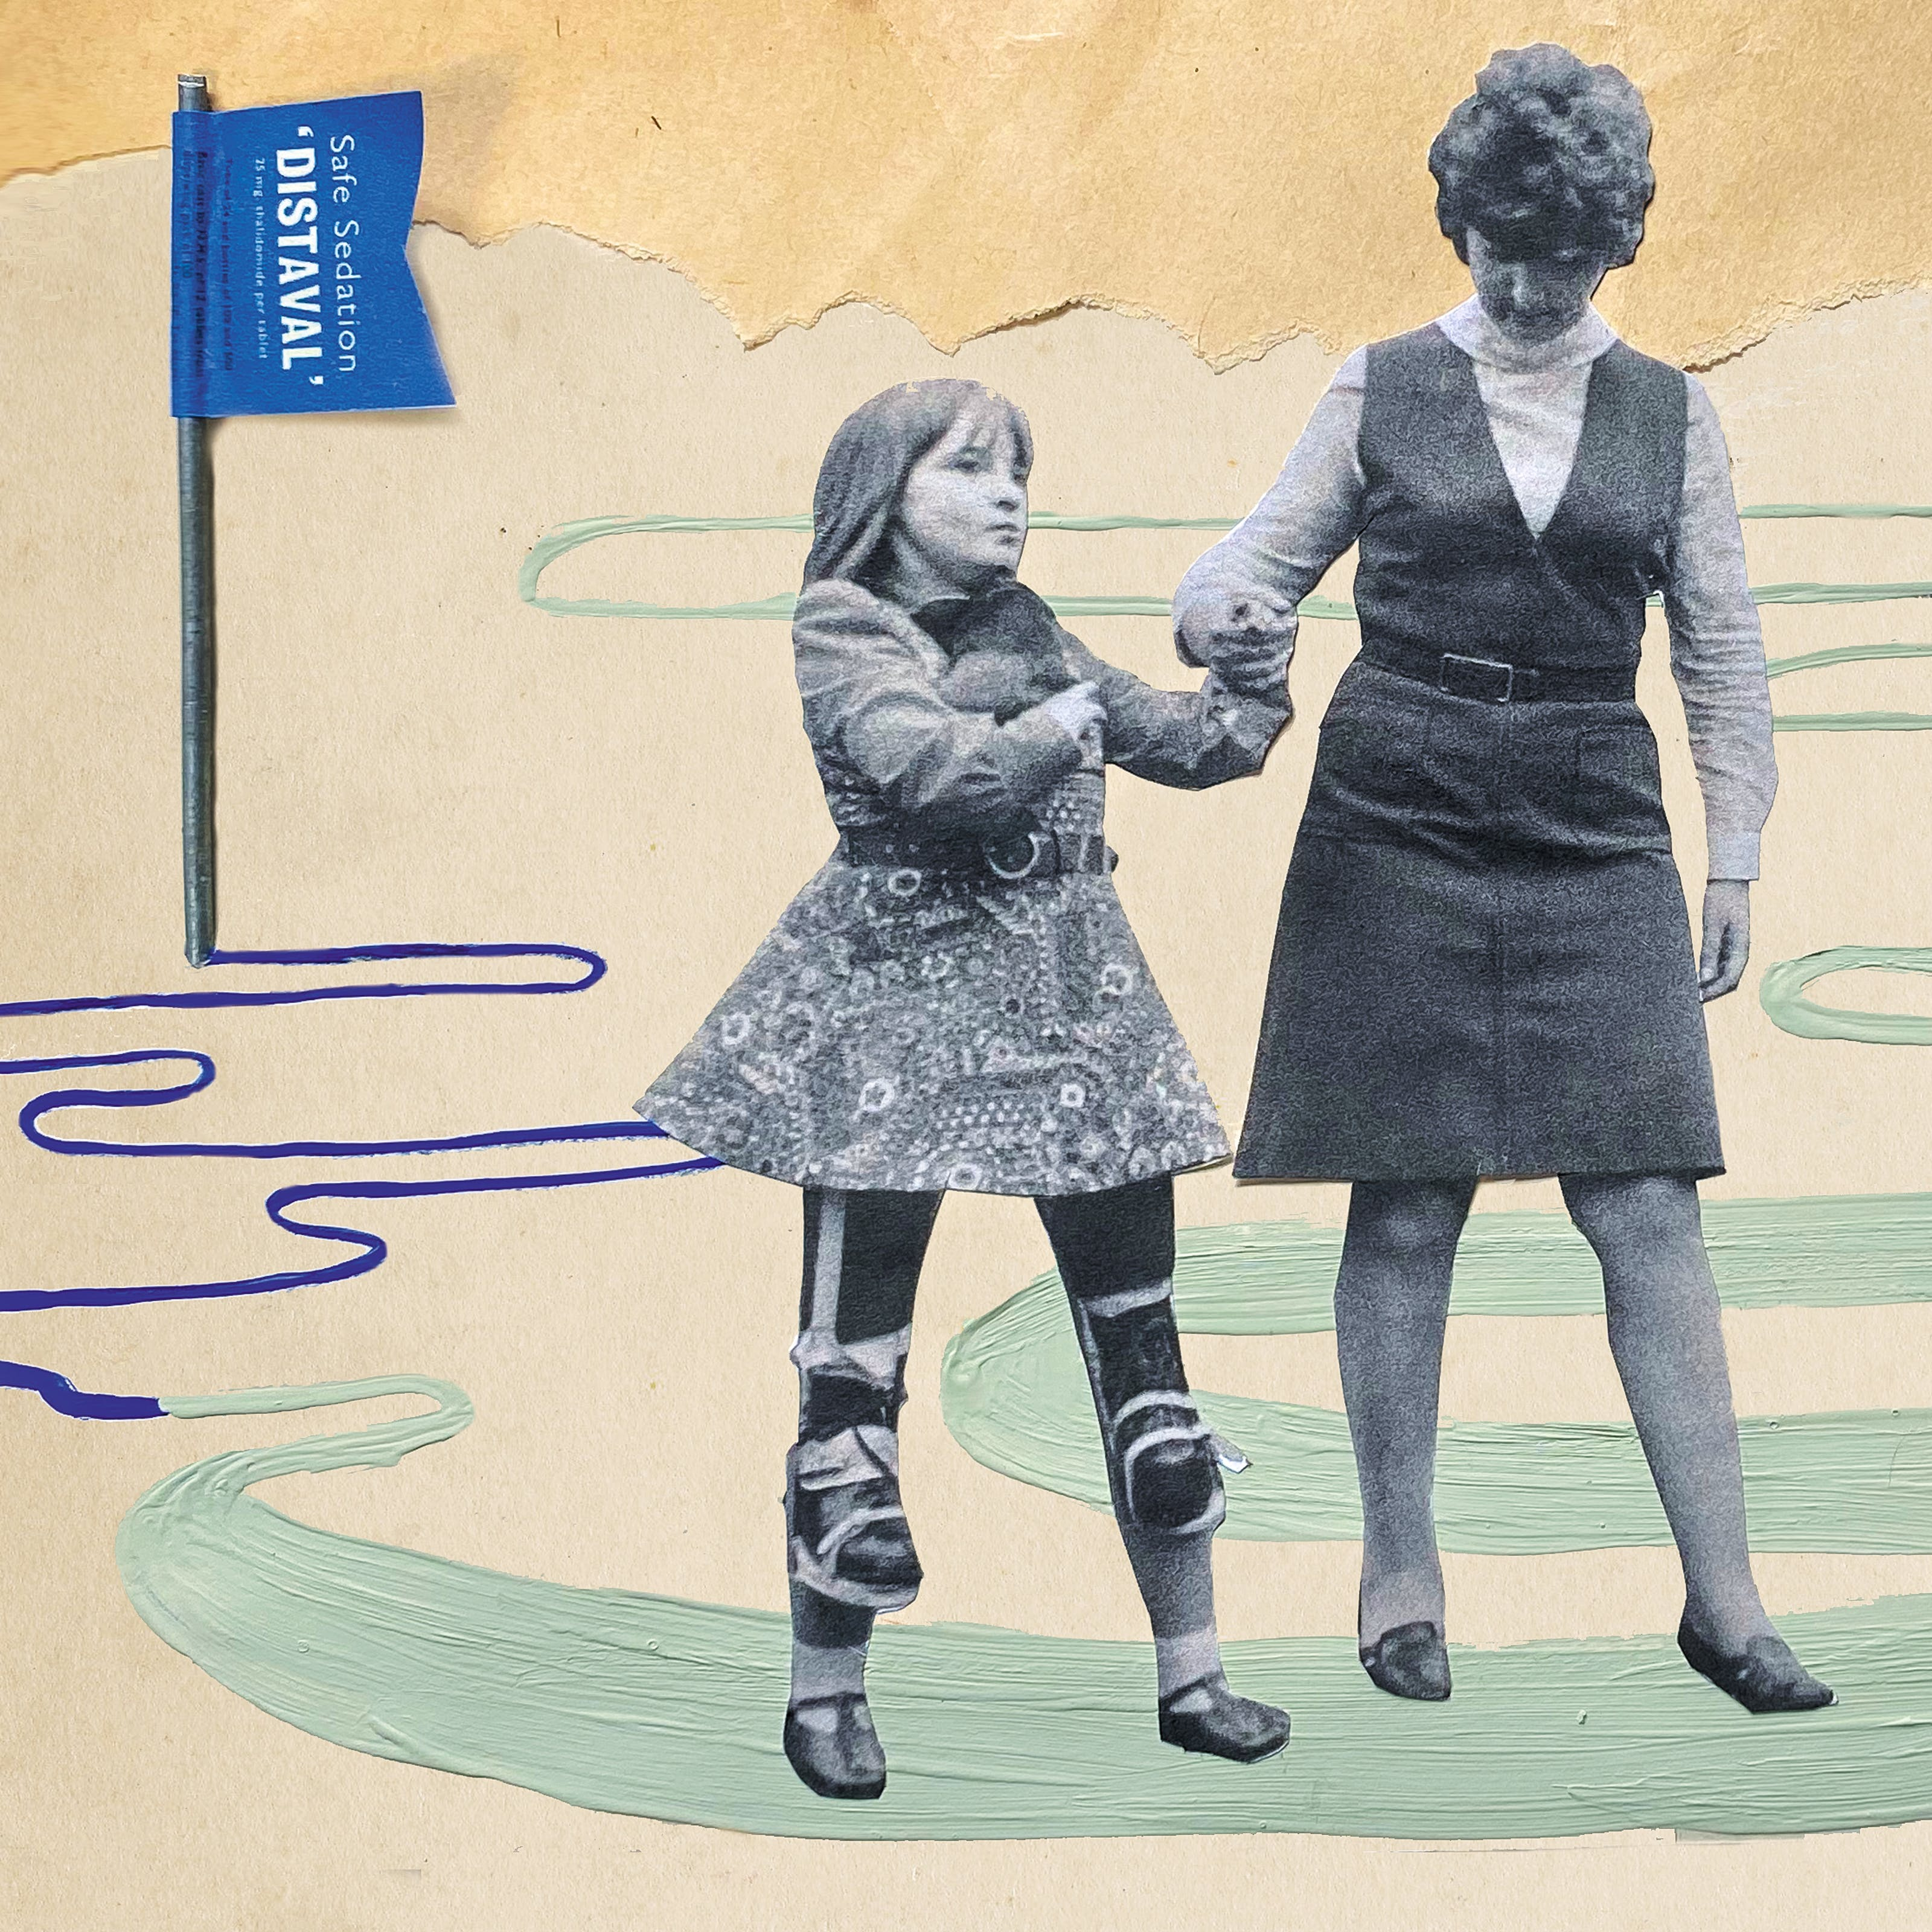 Mix media artwork made up of archive photographs and painted elements. The image shows a black and white photograph of a mother and daughter holding hands, walking along. They have been cut out from the background of the original photograph. The young girl is holding a guinea pig to her chest with her right hand and holding her mother's hand with her left. Her legs and feet in shoes are strapped into short prosthetic legs which also have a shoes on the feet. The mother is looking down at her daughter's feet, helping her to walk. In the distance is a mountain range made up of a torn yellowing piece of paper. To the left is a three dimensional blue flag with the words, 'Safe Sedation DISTAVAL' written on it. From the base of the flag is a thin blue line the same colour as the flag, which winds its was towards the mother and daughter. As is approach it gets broader and abruptly changes colour to a light green. The broad line travels under the feet of the figures and then away into the distance behind them and to the right. The Lins is draw in paint and the texture of the paint can be seen.